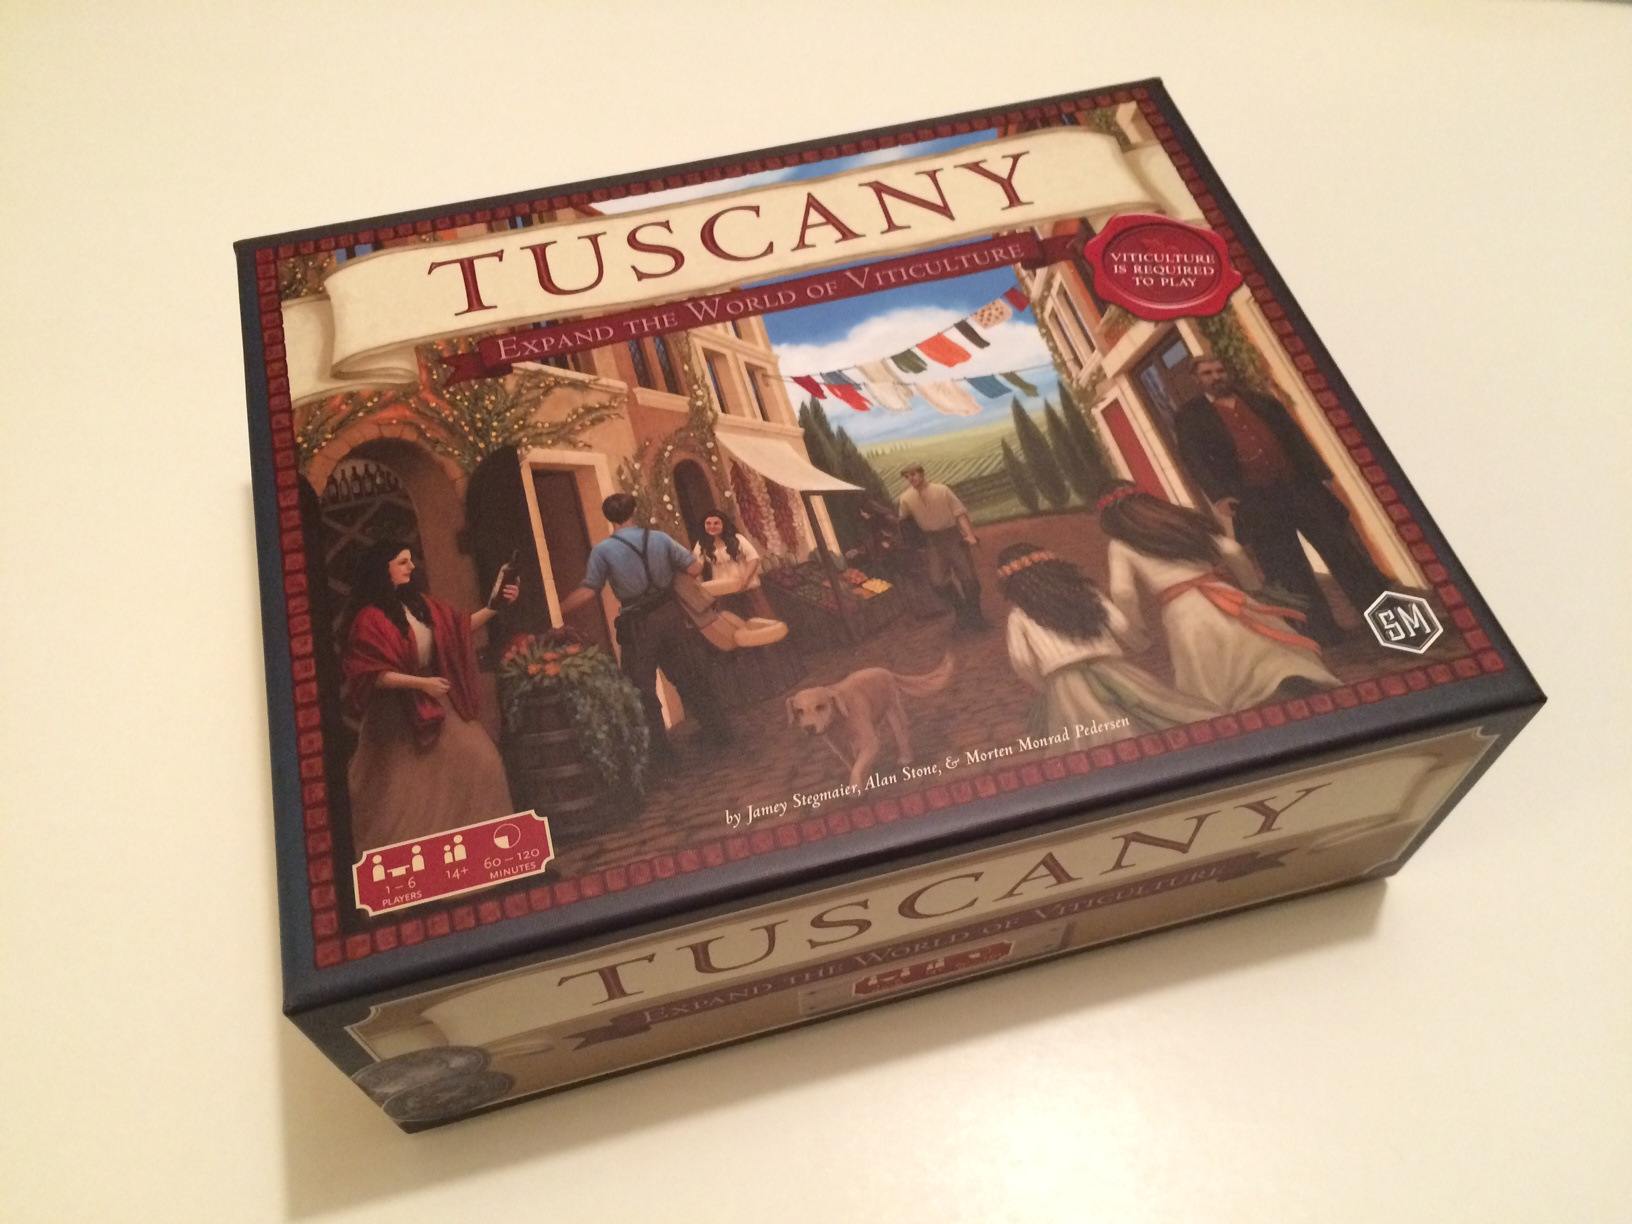 https://i0.wp.com/stonemaiergames.com/wp-content/uploads/2013/10/Tuscany-box.jpg